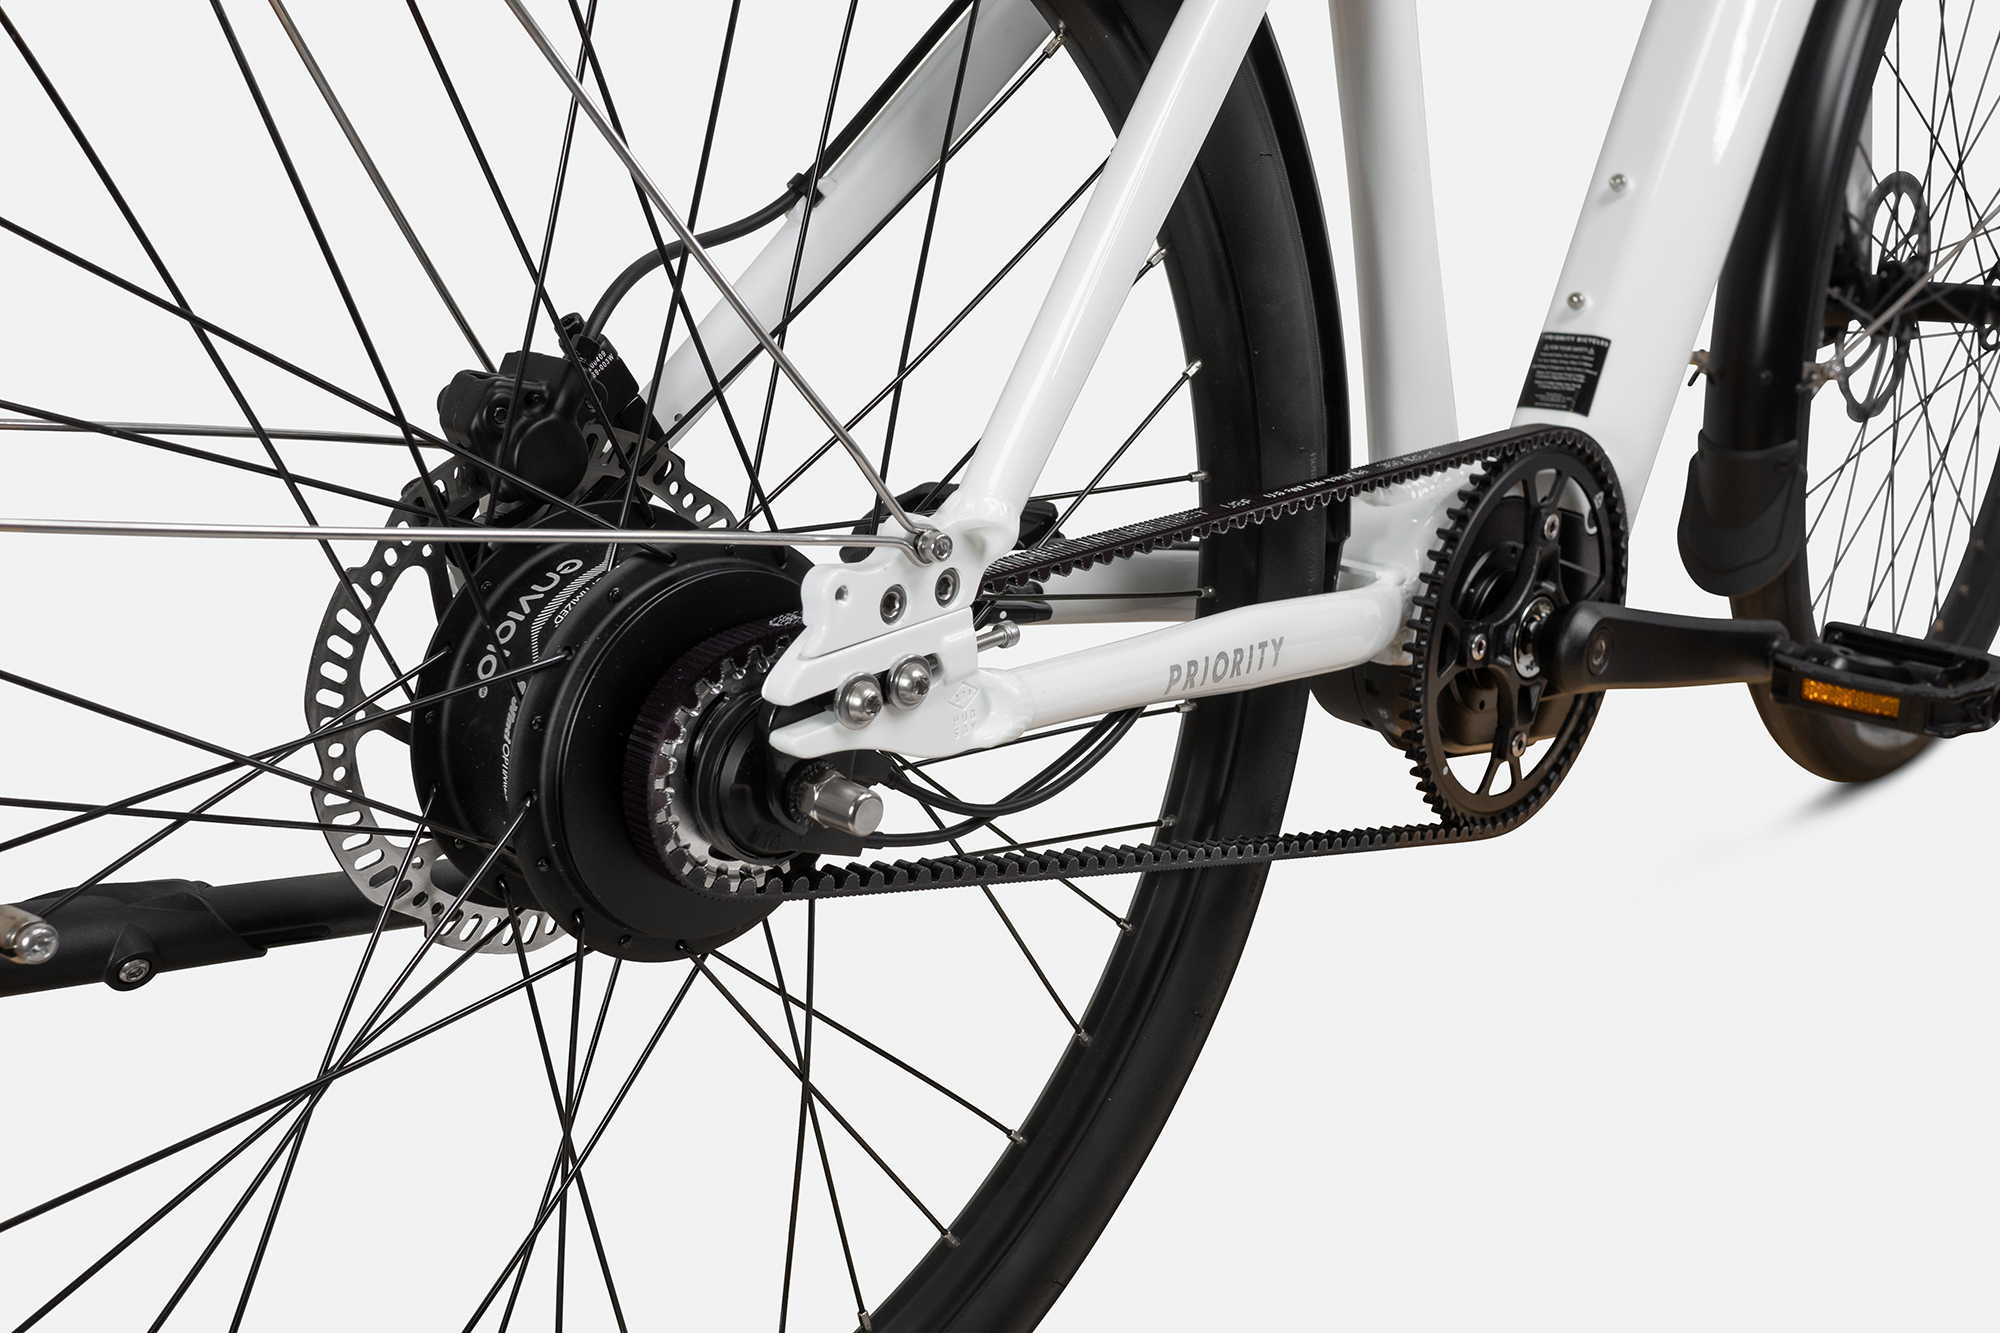 Priority current electric bike detail image showing rear hub and gates carbon belt drive